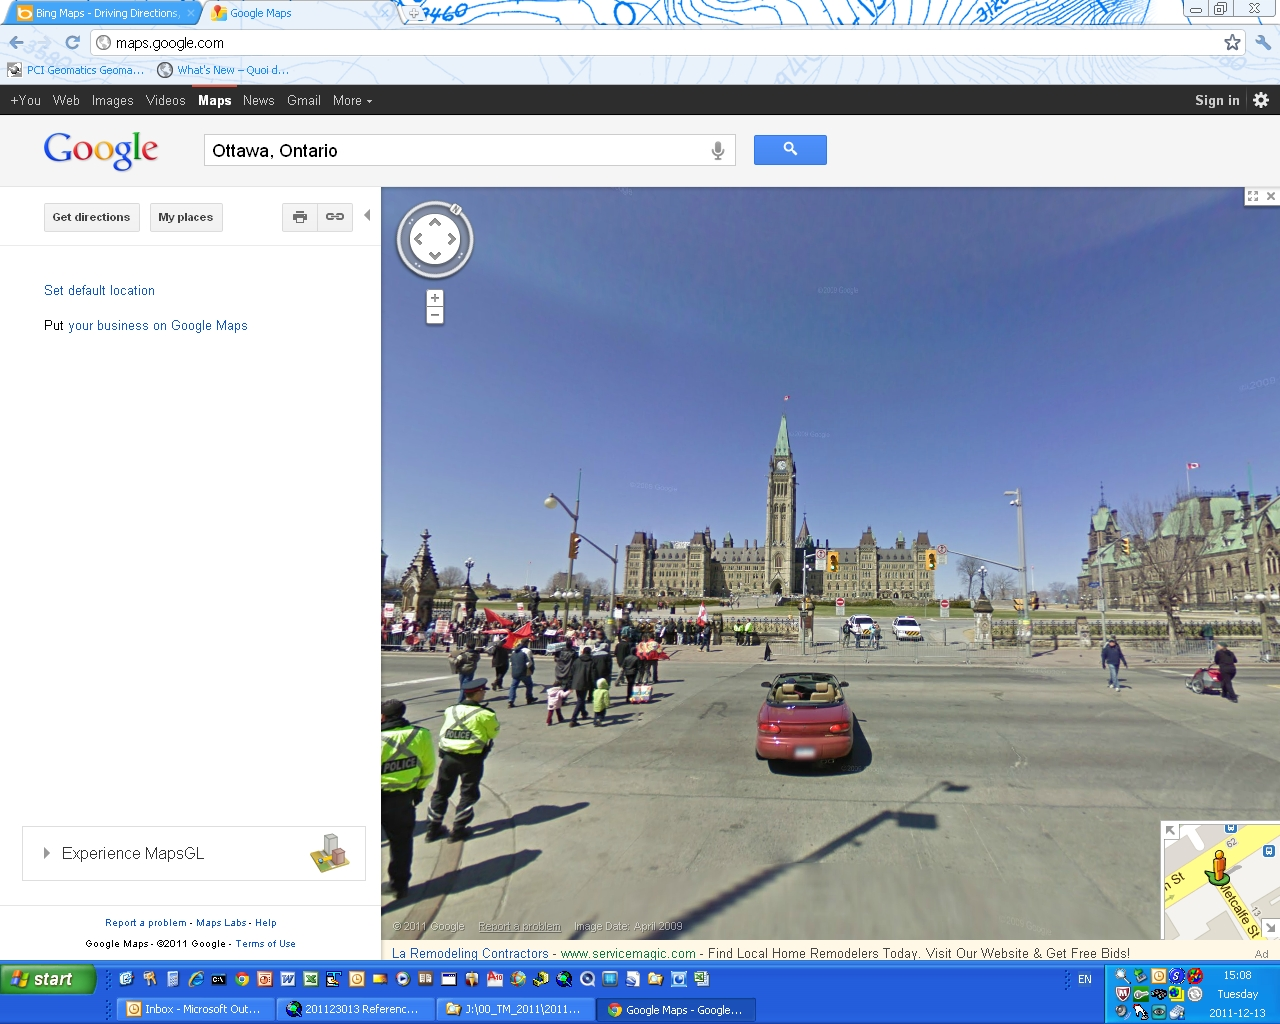 Google Maps Driving Directions Ontario on